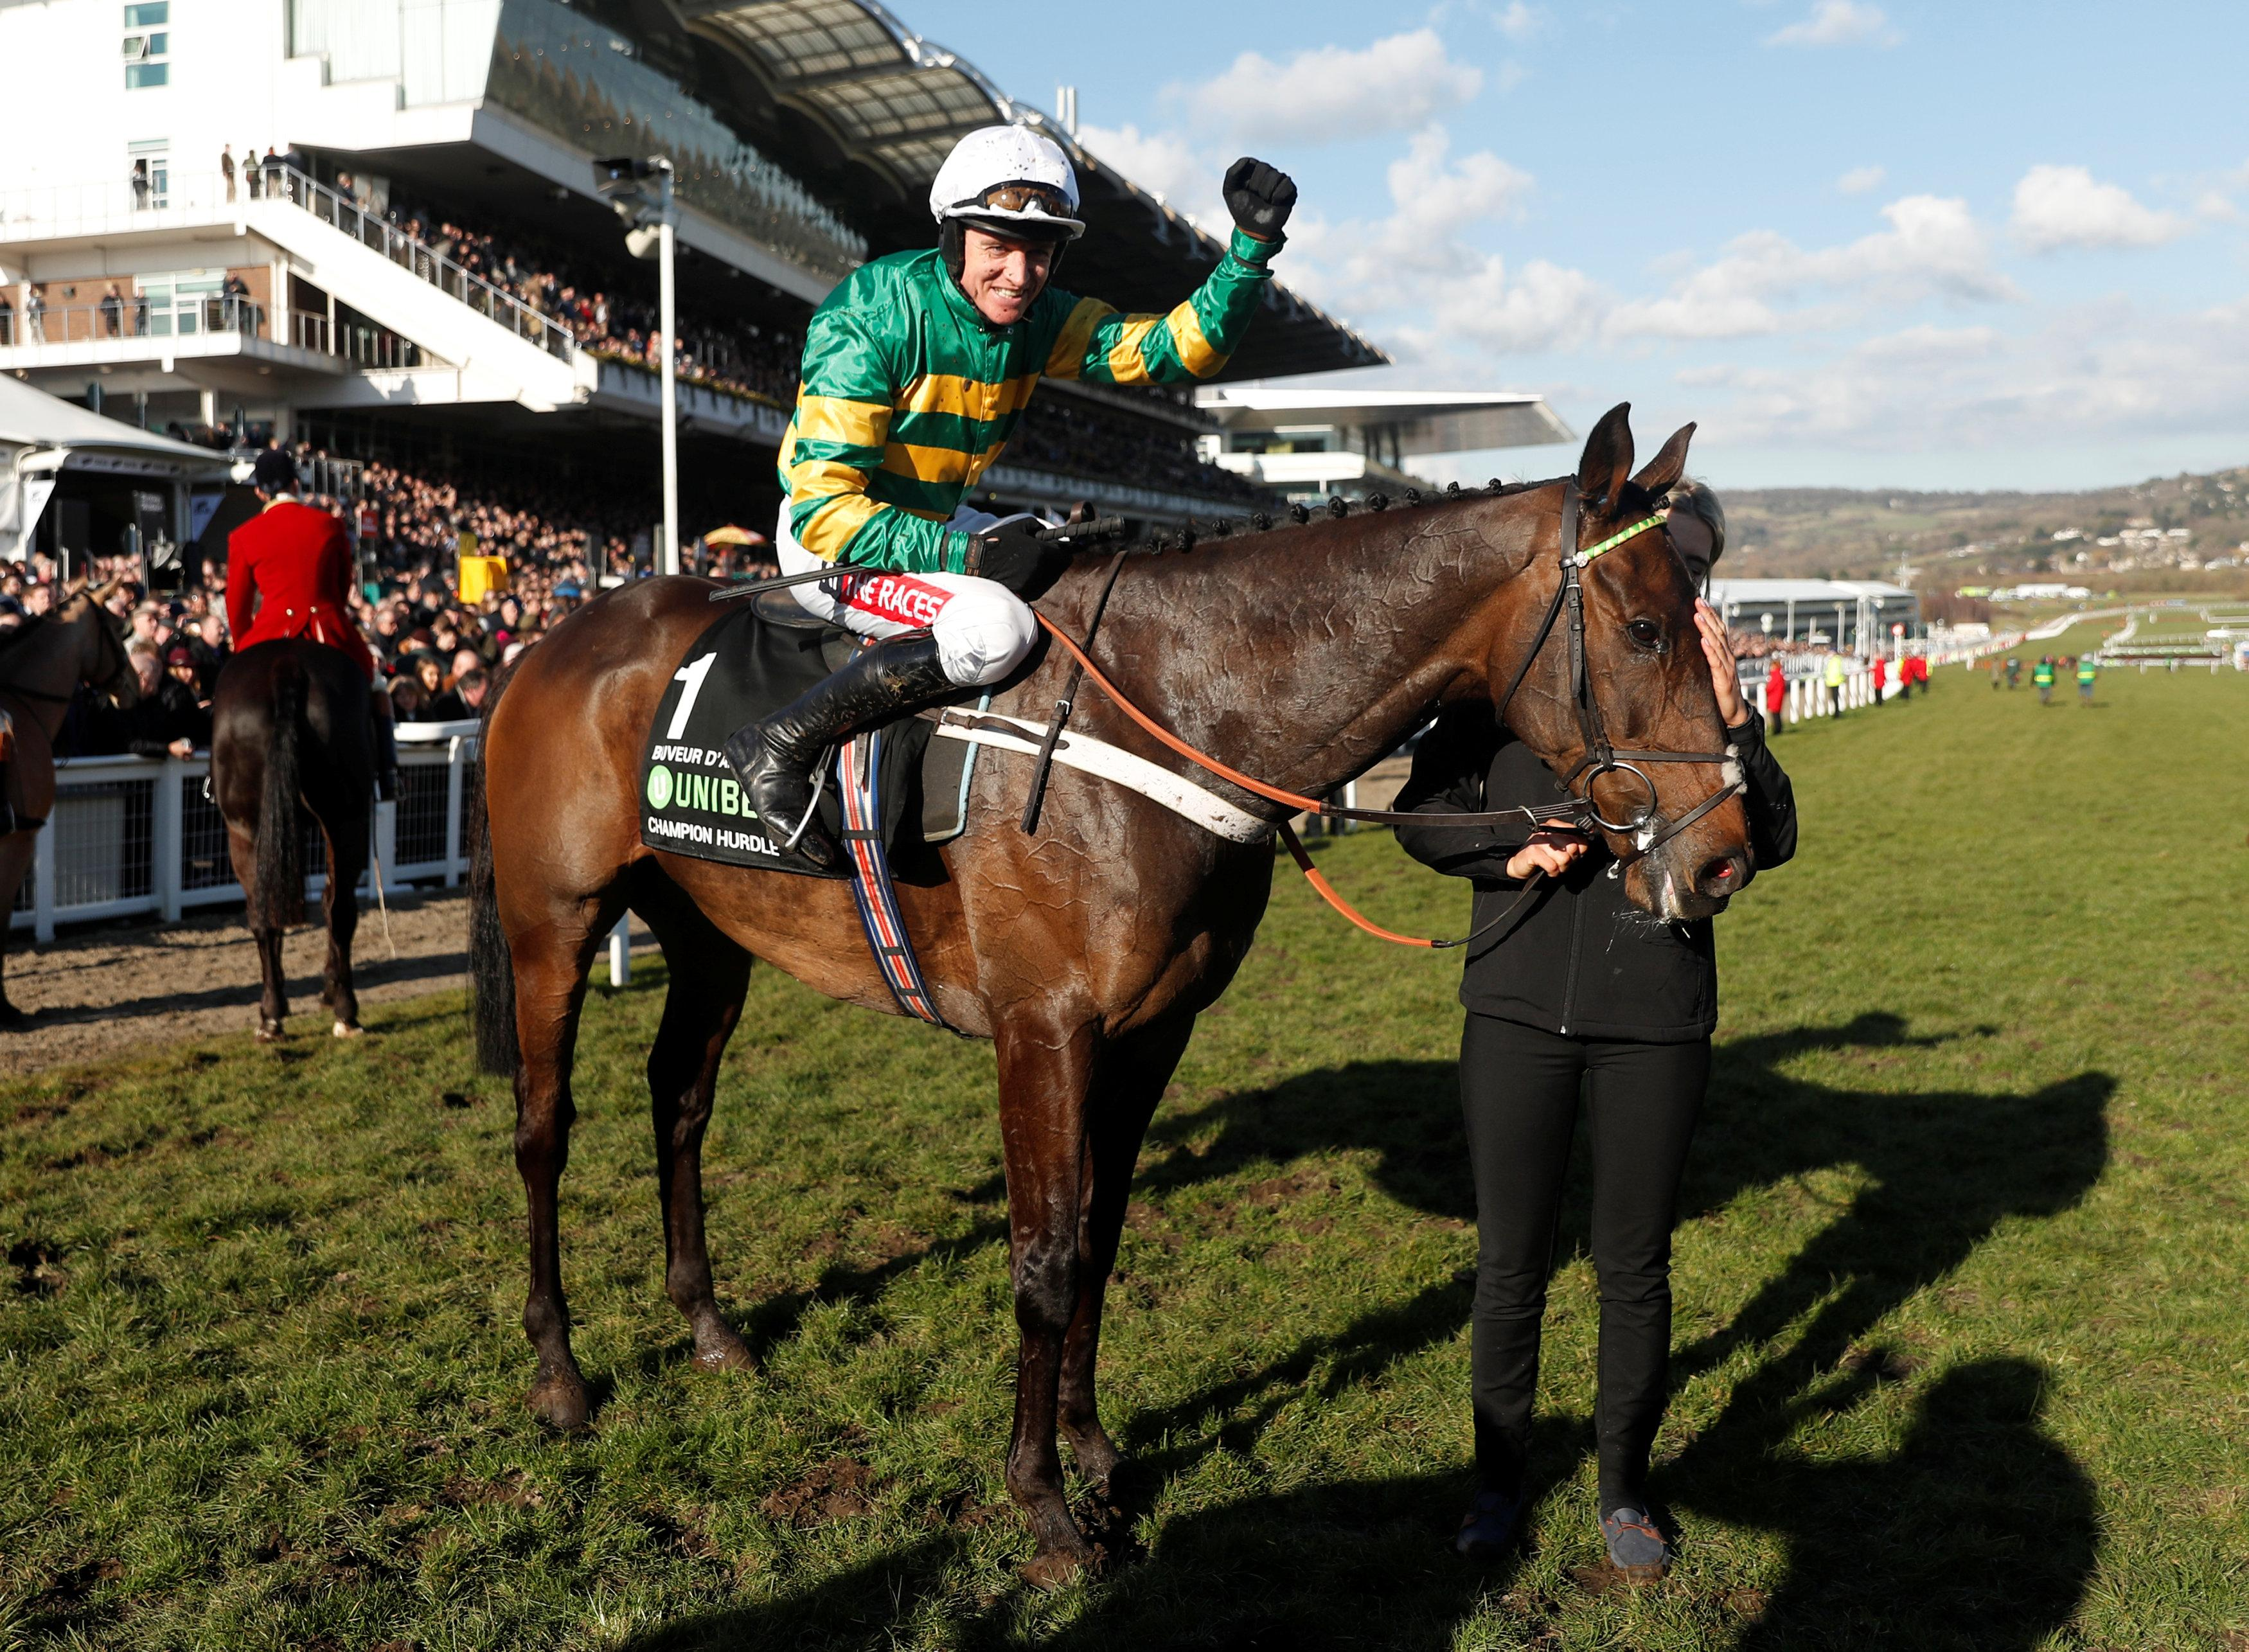 Barry Geraghty punches the air after riding the favourite Buveur D'Air to victory in the Champion Hurdle